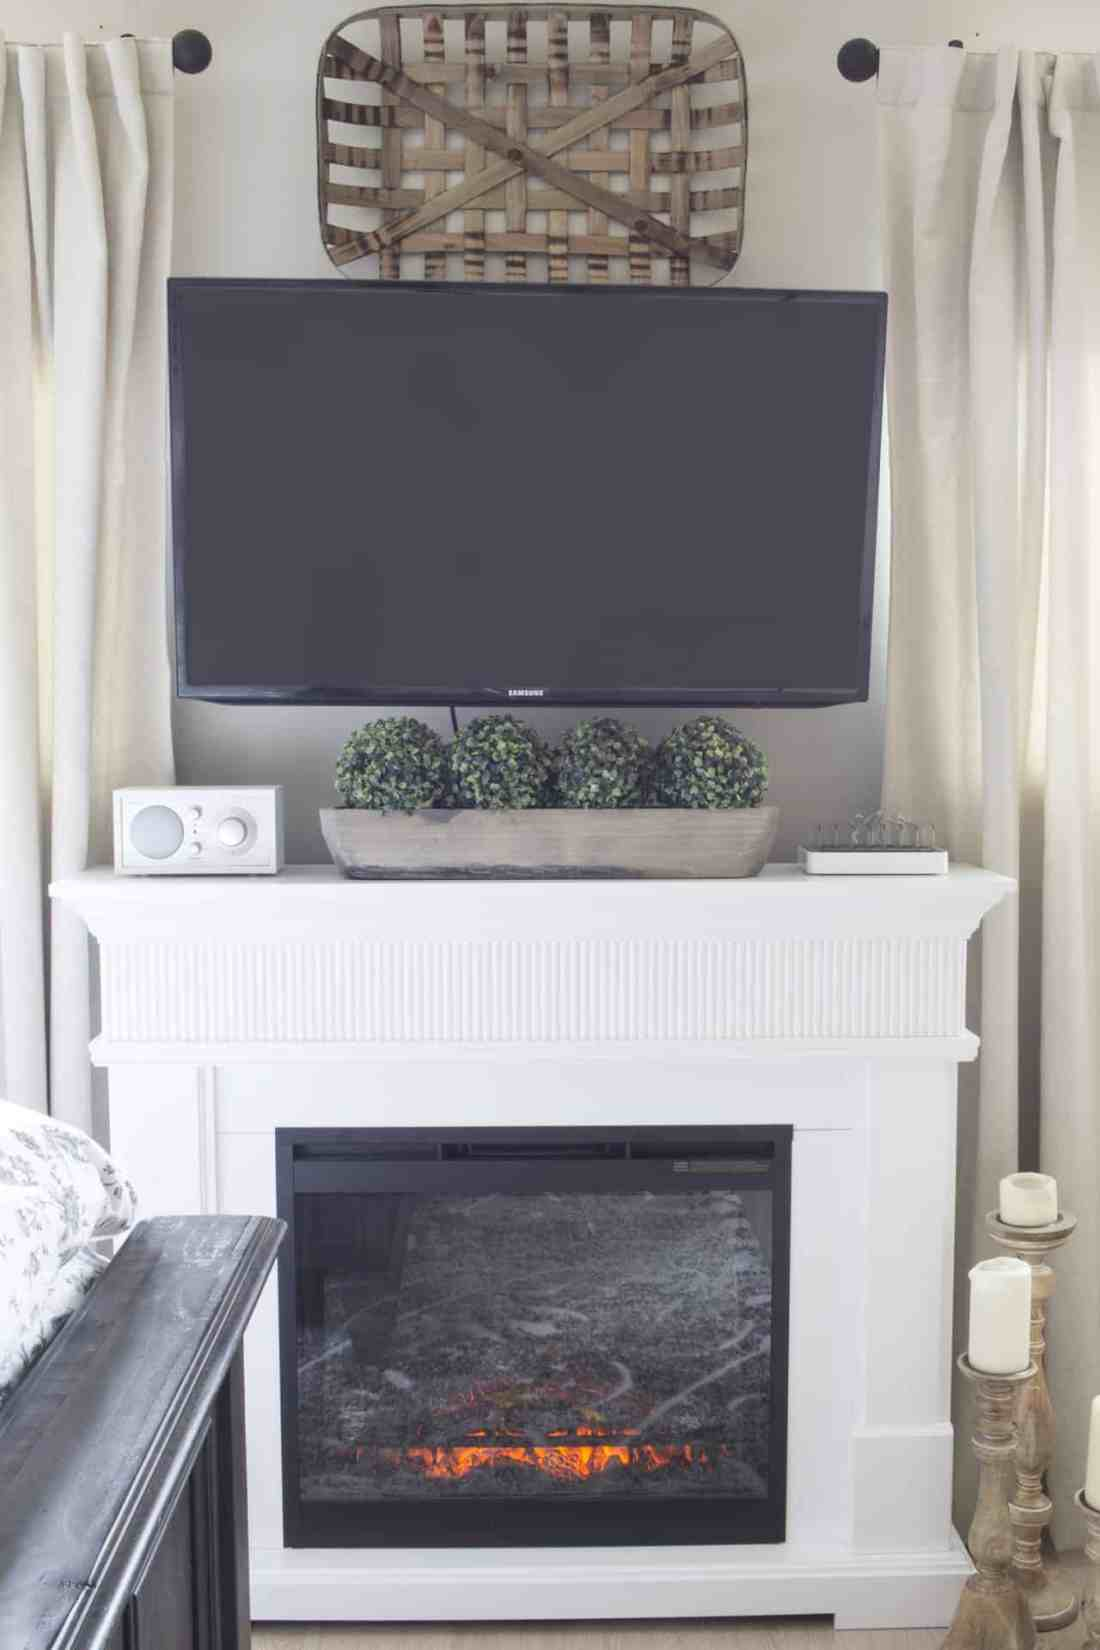 tv over electric fireplace in bedroom